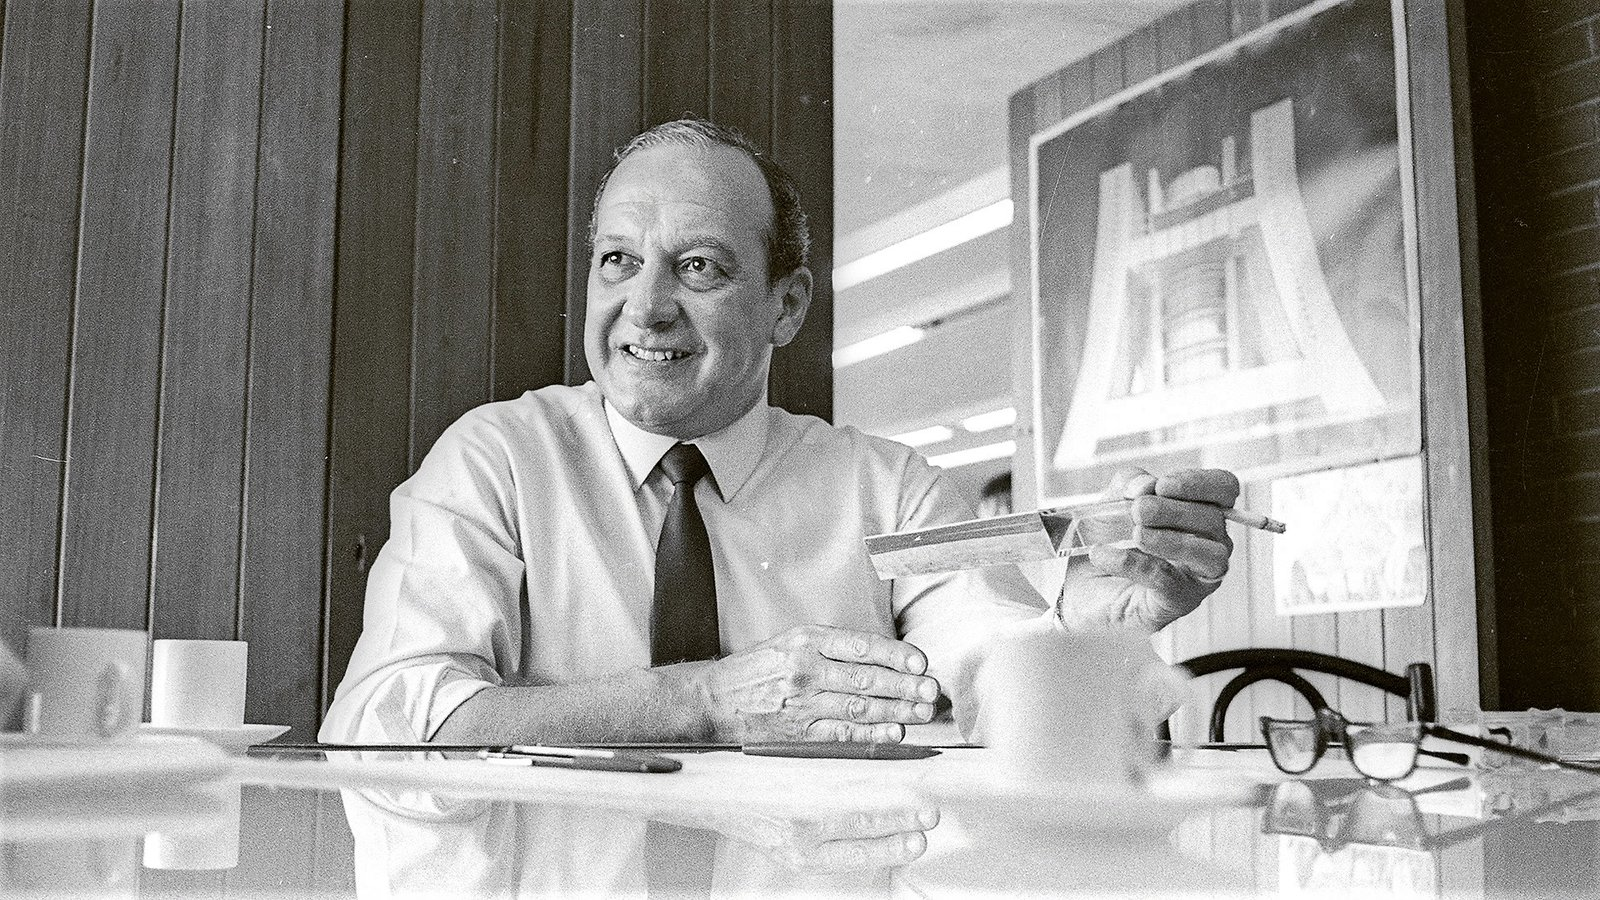 Bernardes - The Life & Work of A Brilliant Brazilian Architect